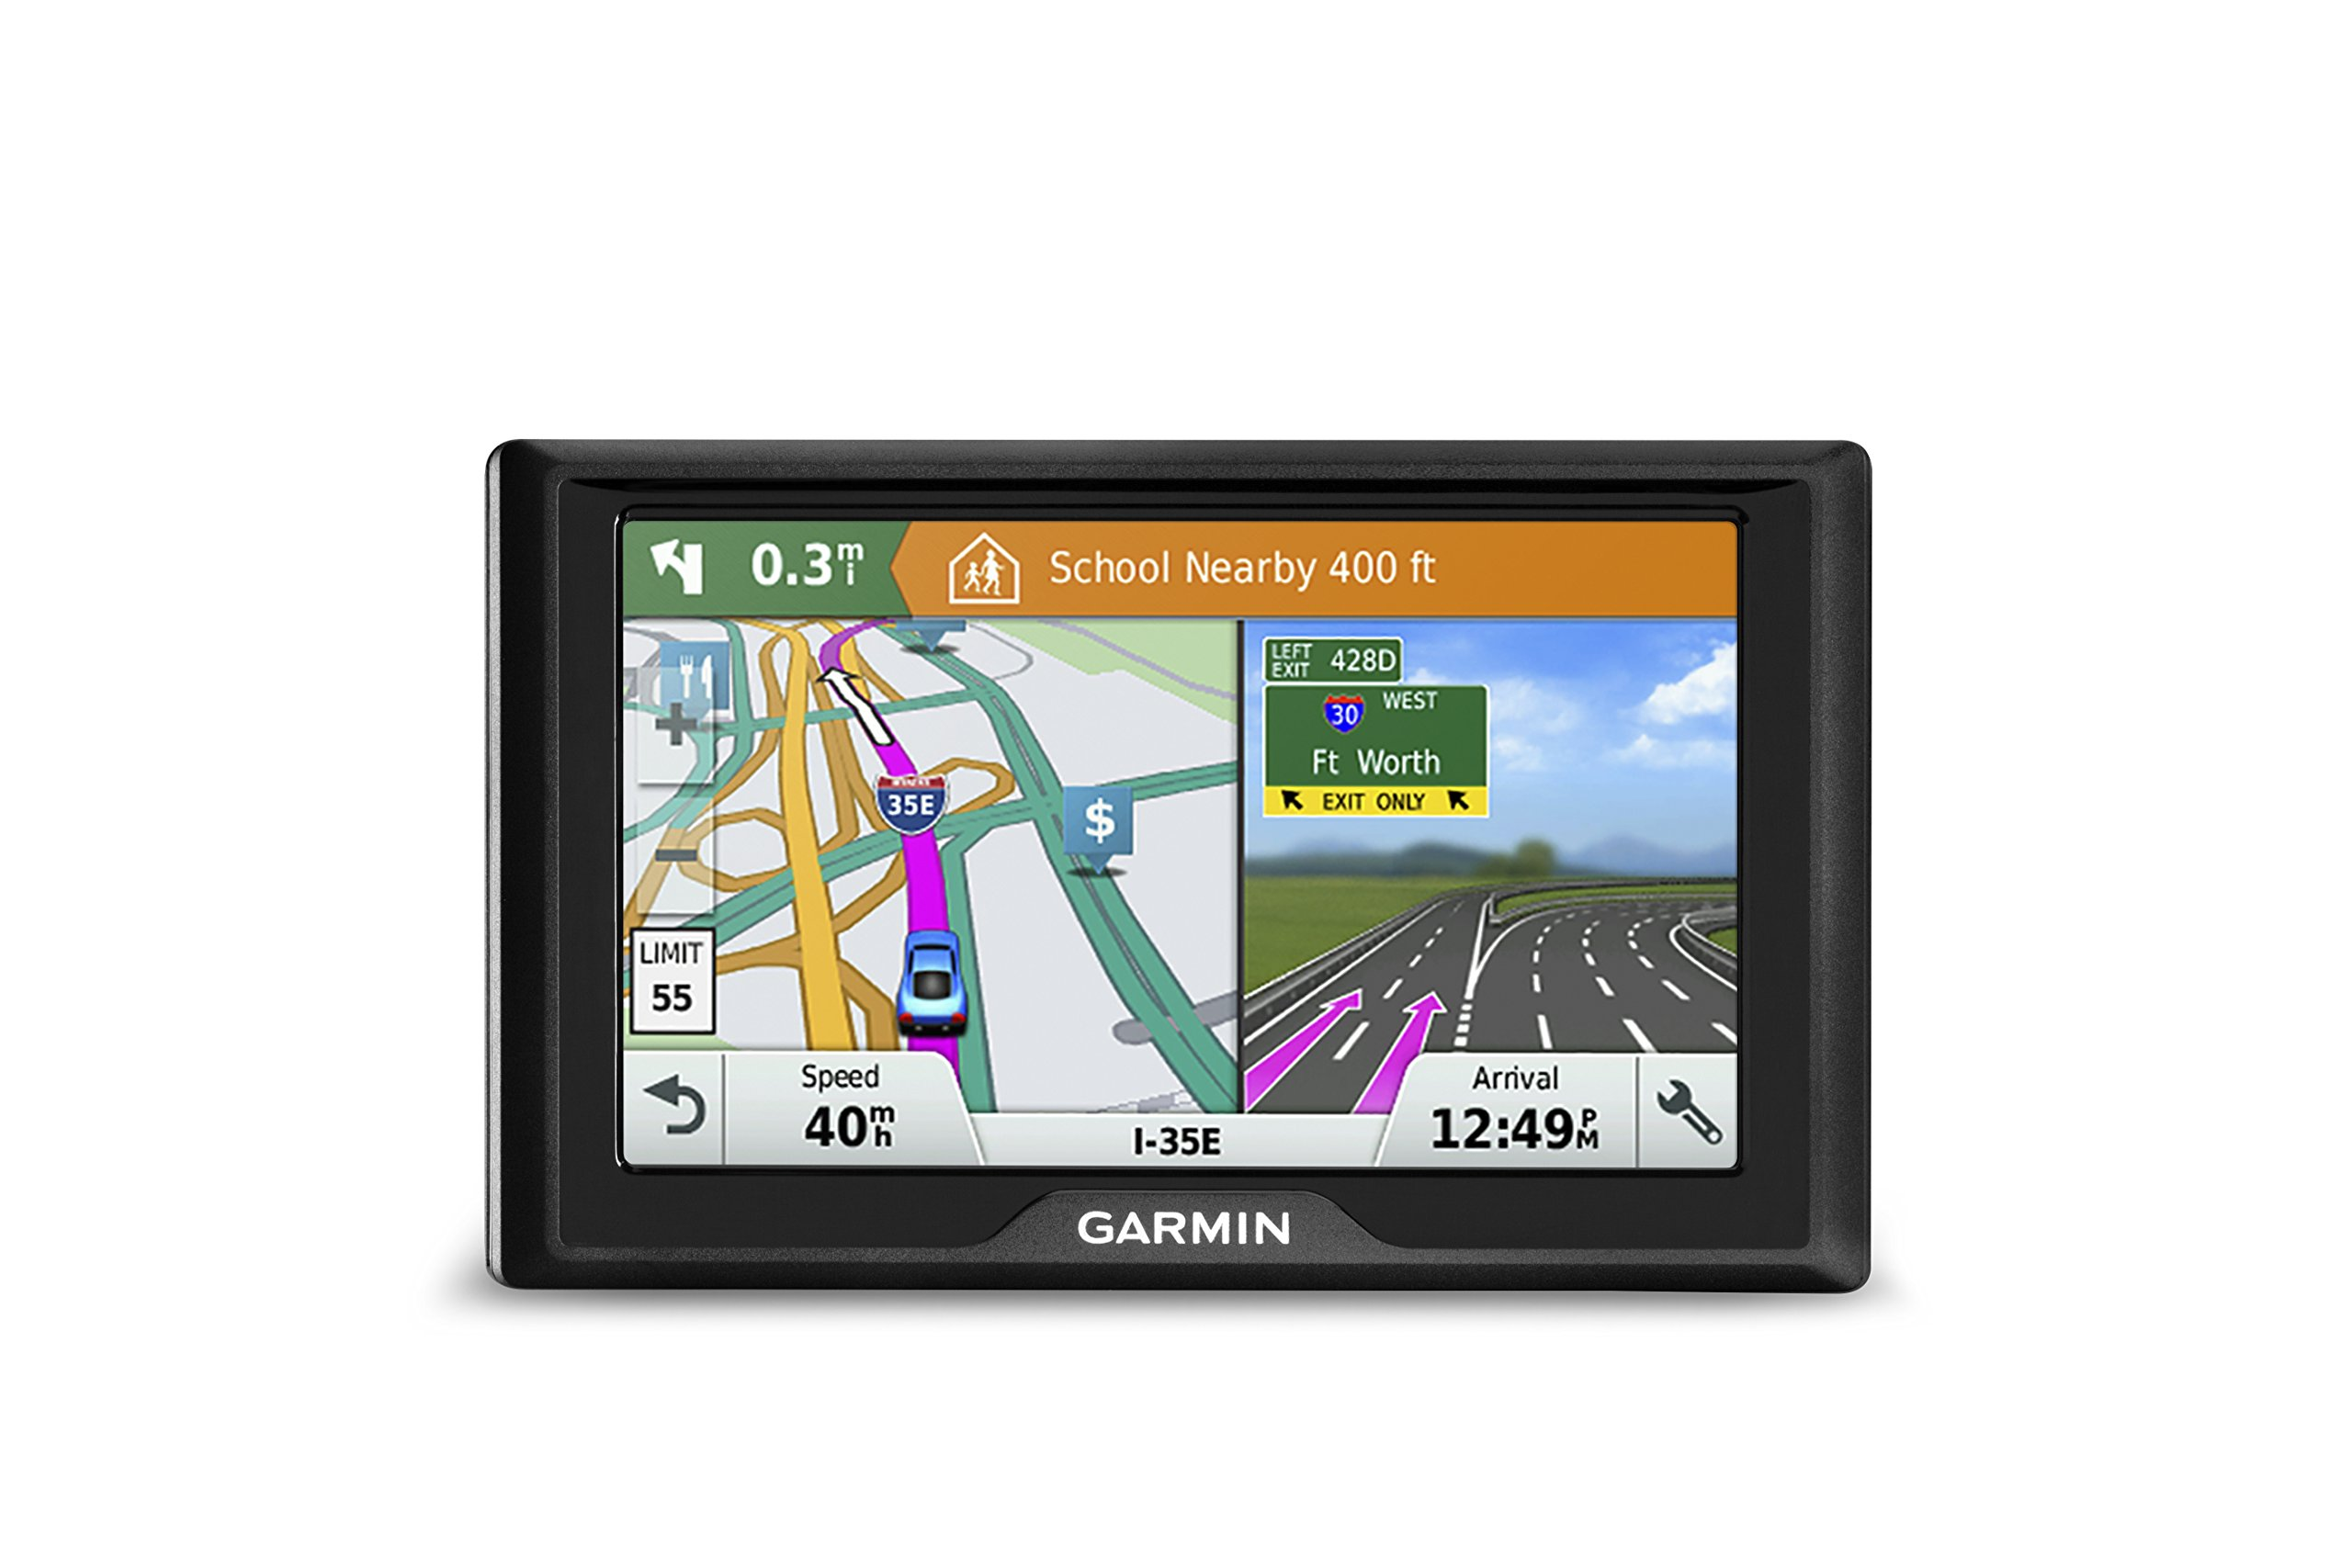 Garmin Drive 51 USA LM GPS Navigator System with Lifetime Maps, Spoken Turn-By-Turn Directions, Direct Access, Driver Alerts, TripAdvisor and Foursquare Data by Garmin